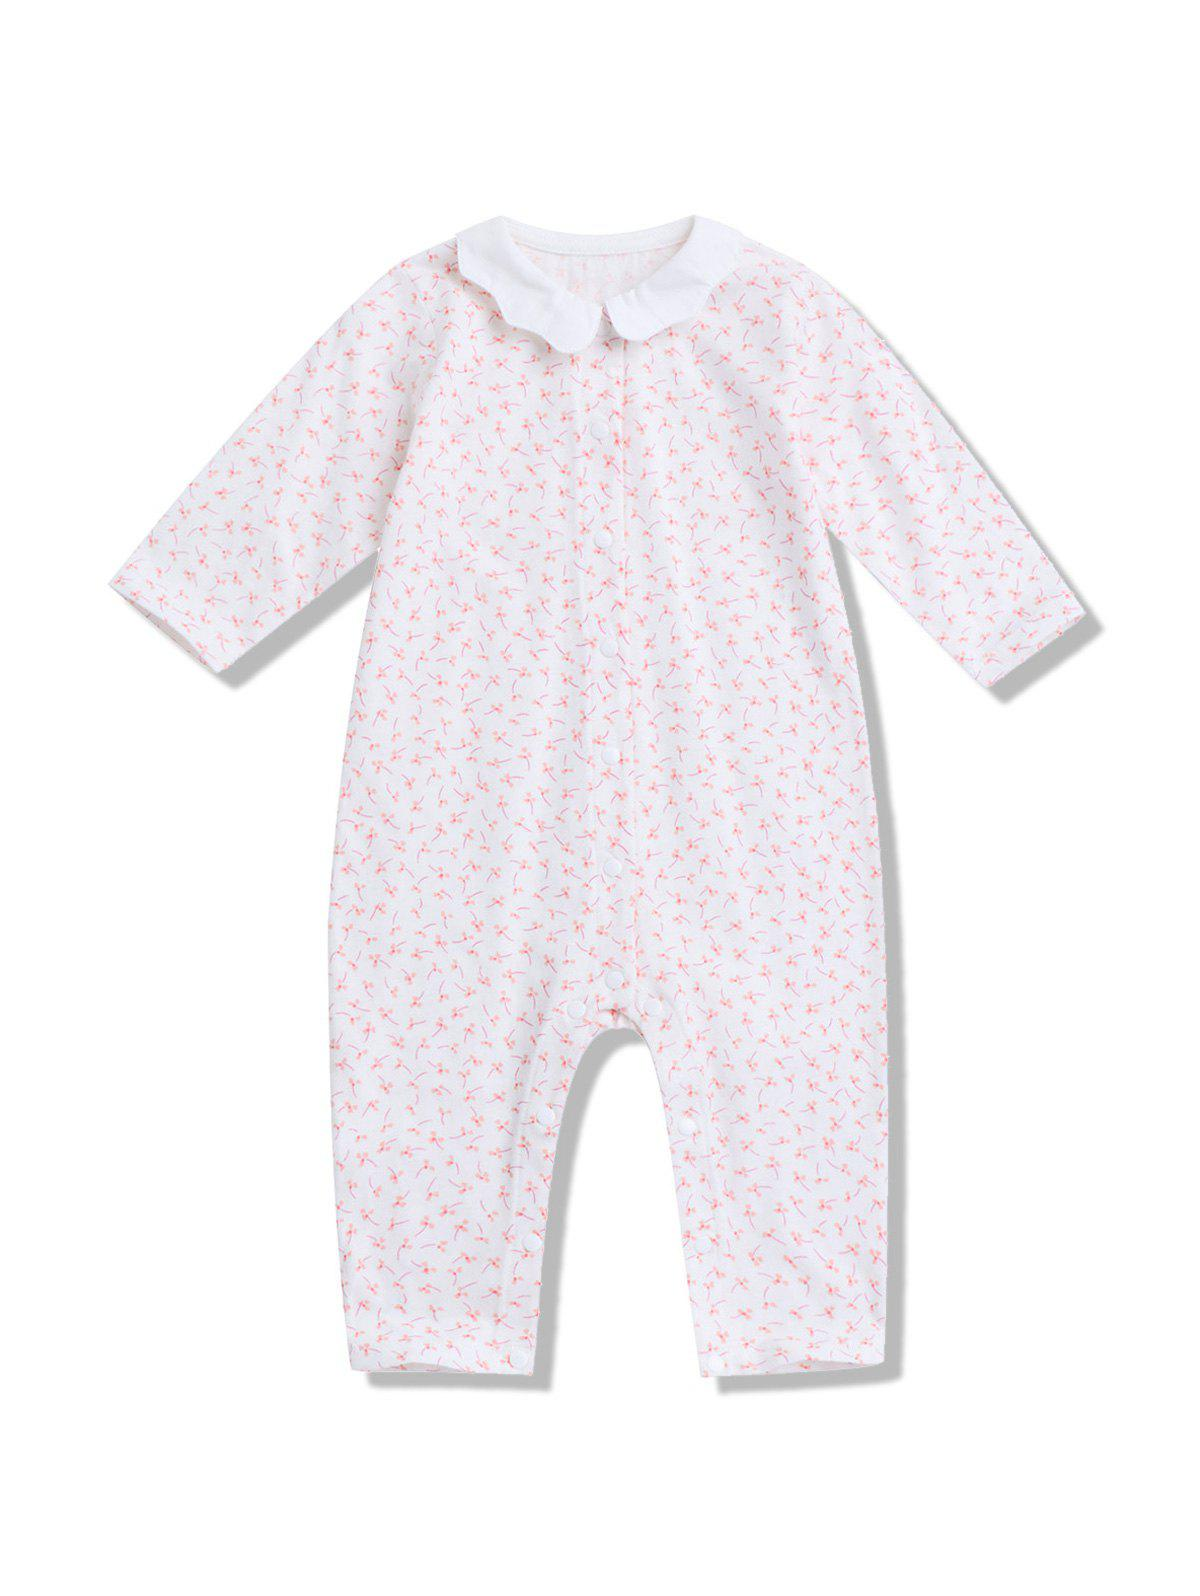 Tiny Flowers Pattern Baby Romper - multicolor 73